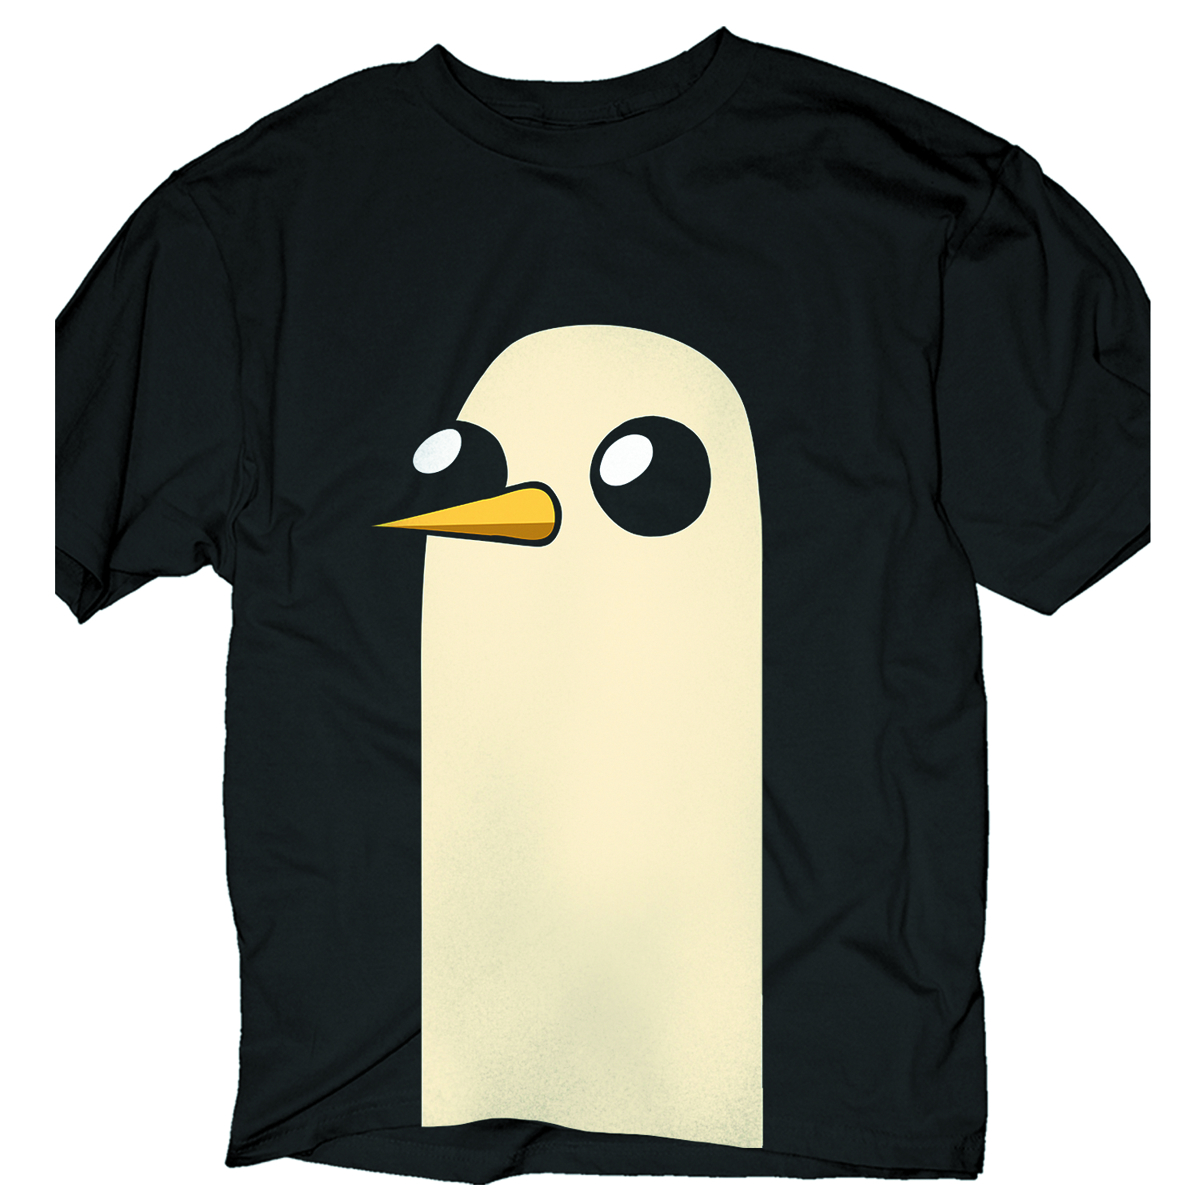 ADVENTURE TIME GUNTER LG PRINT PX BLK T/S XXL